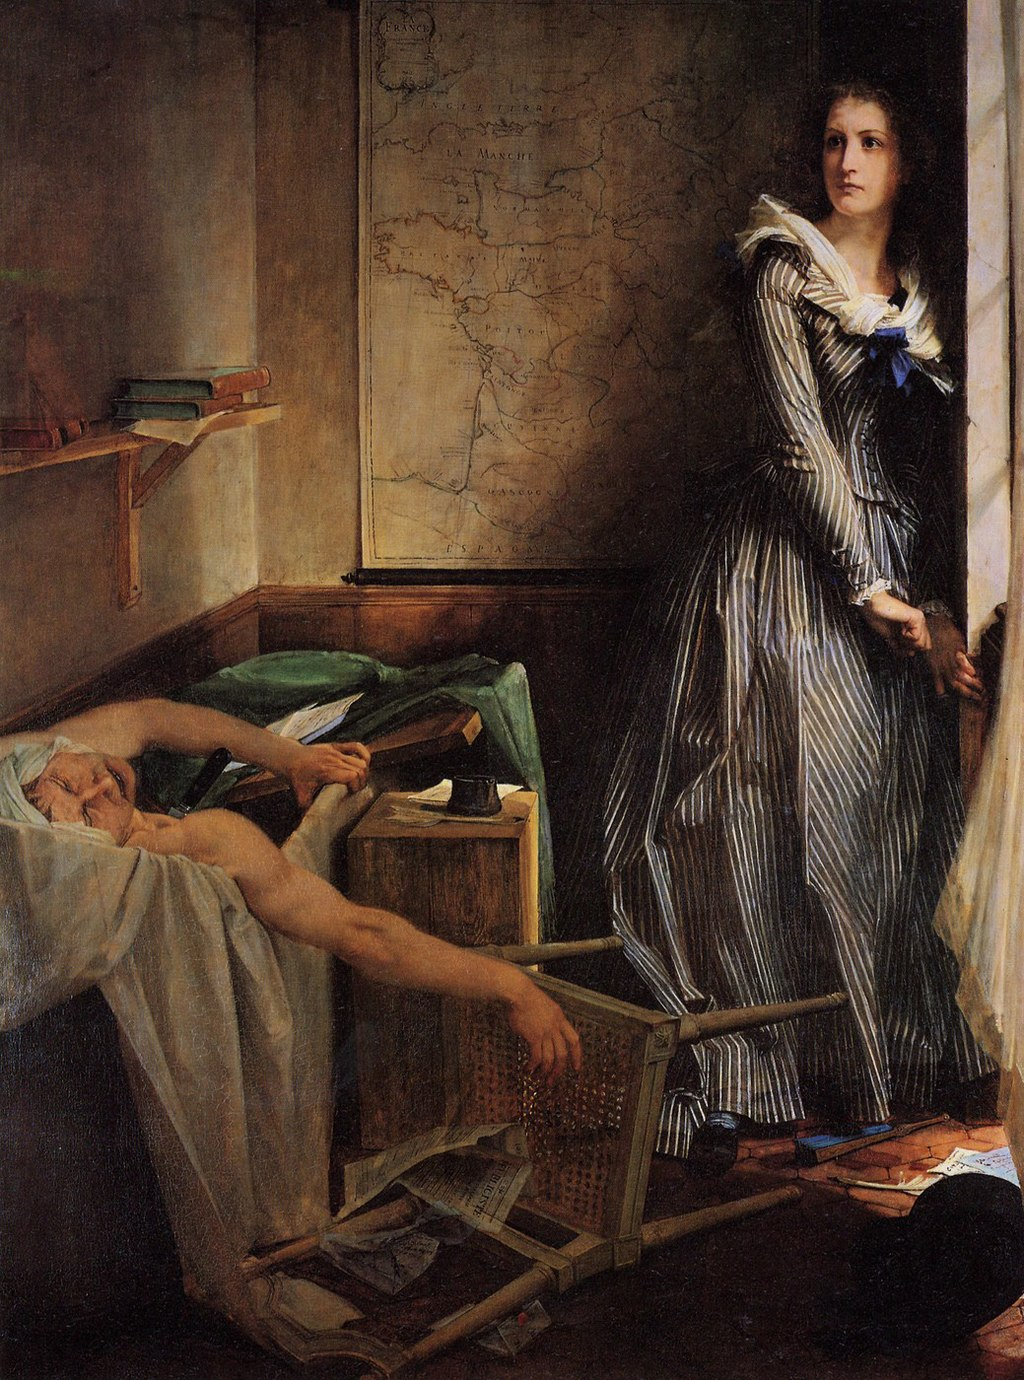 Depiction of Charlotte Corday's assassination of Jean-Paul Marat (Wikipedia)